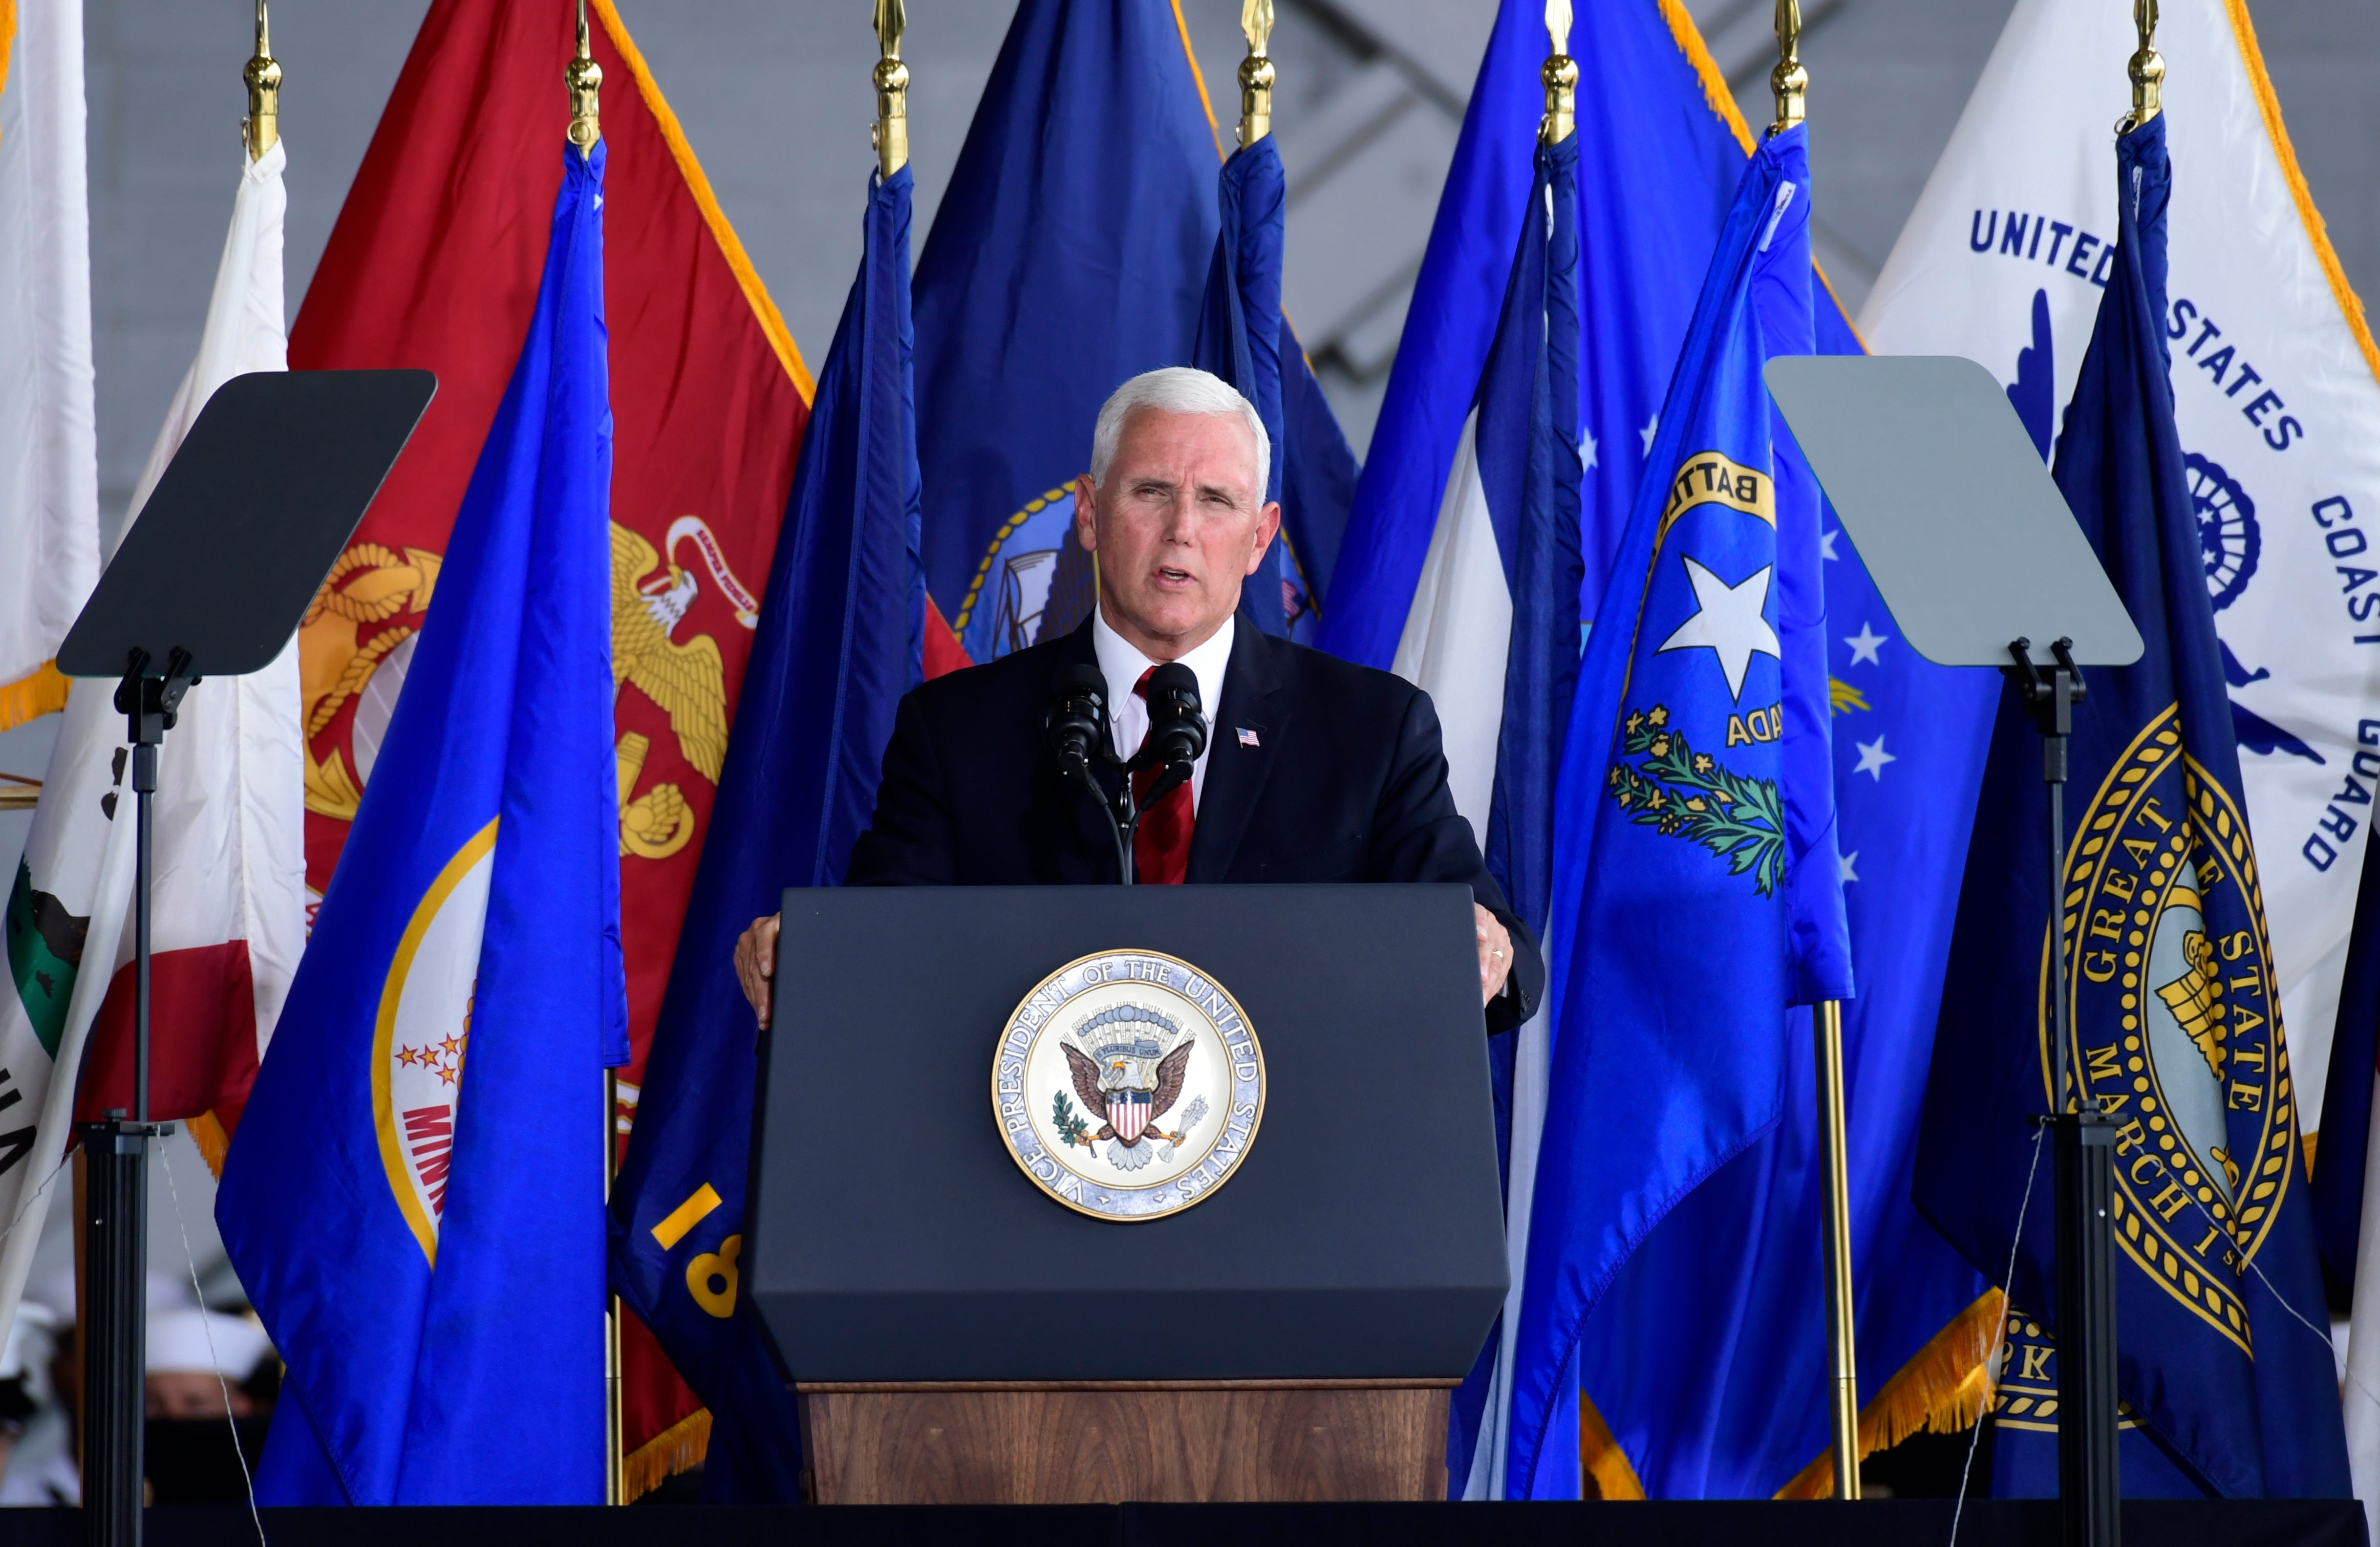 Trump's Space Force launched at Pentagon as a separate armed service